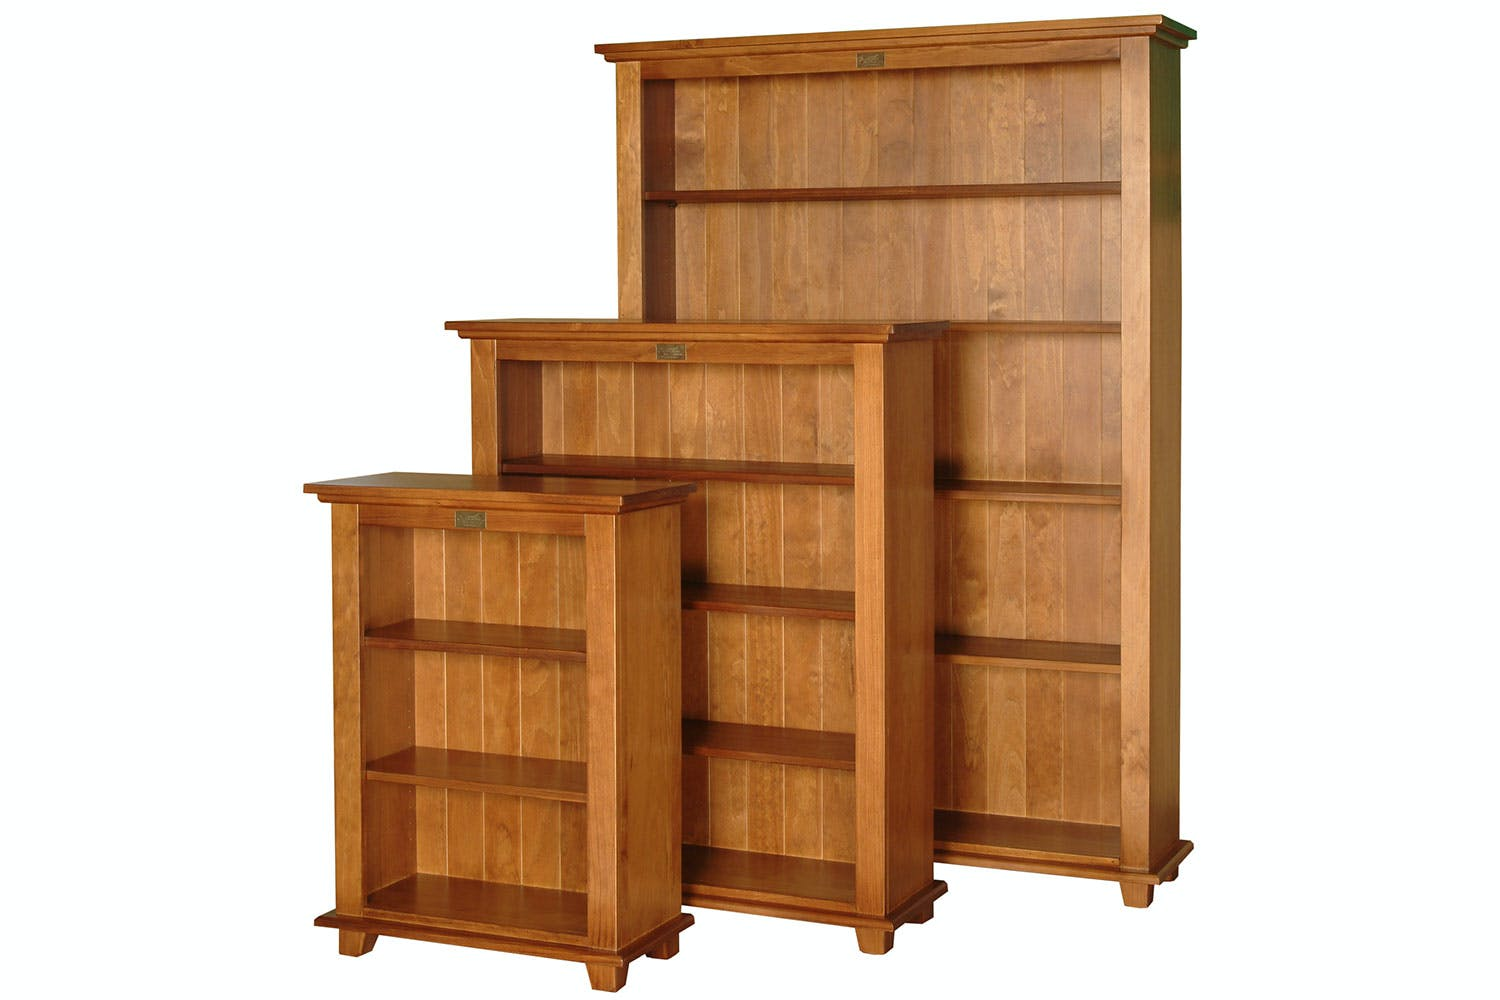 Ferngrove Bookcase 2100x900 By Coastwood Furniture